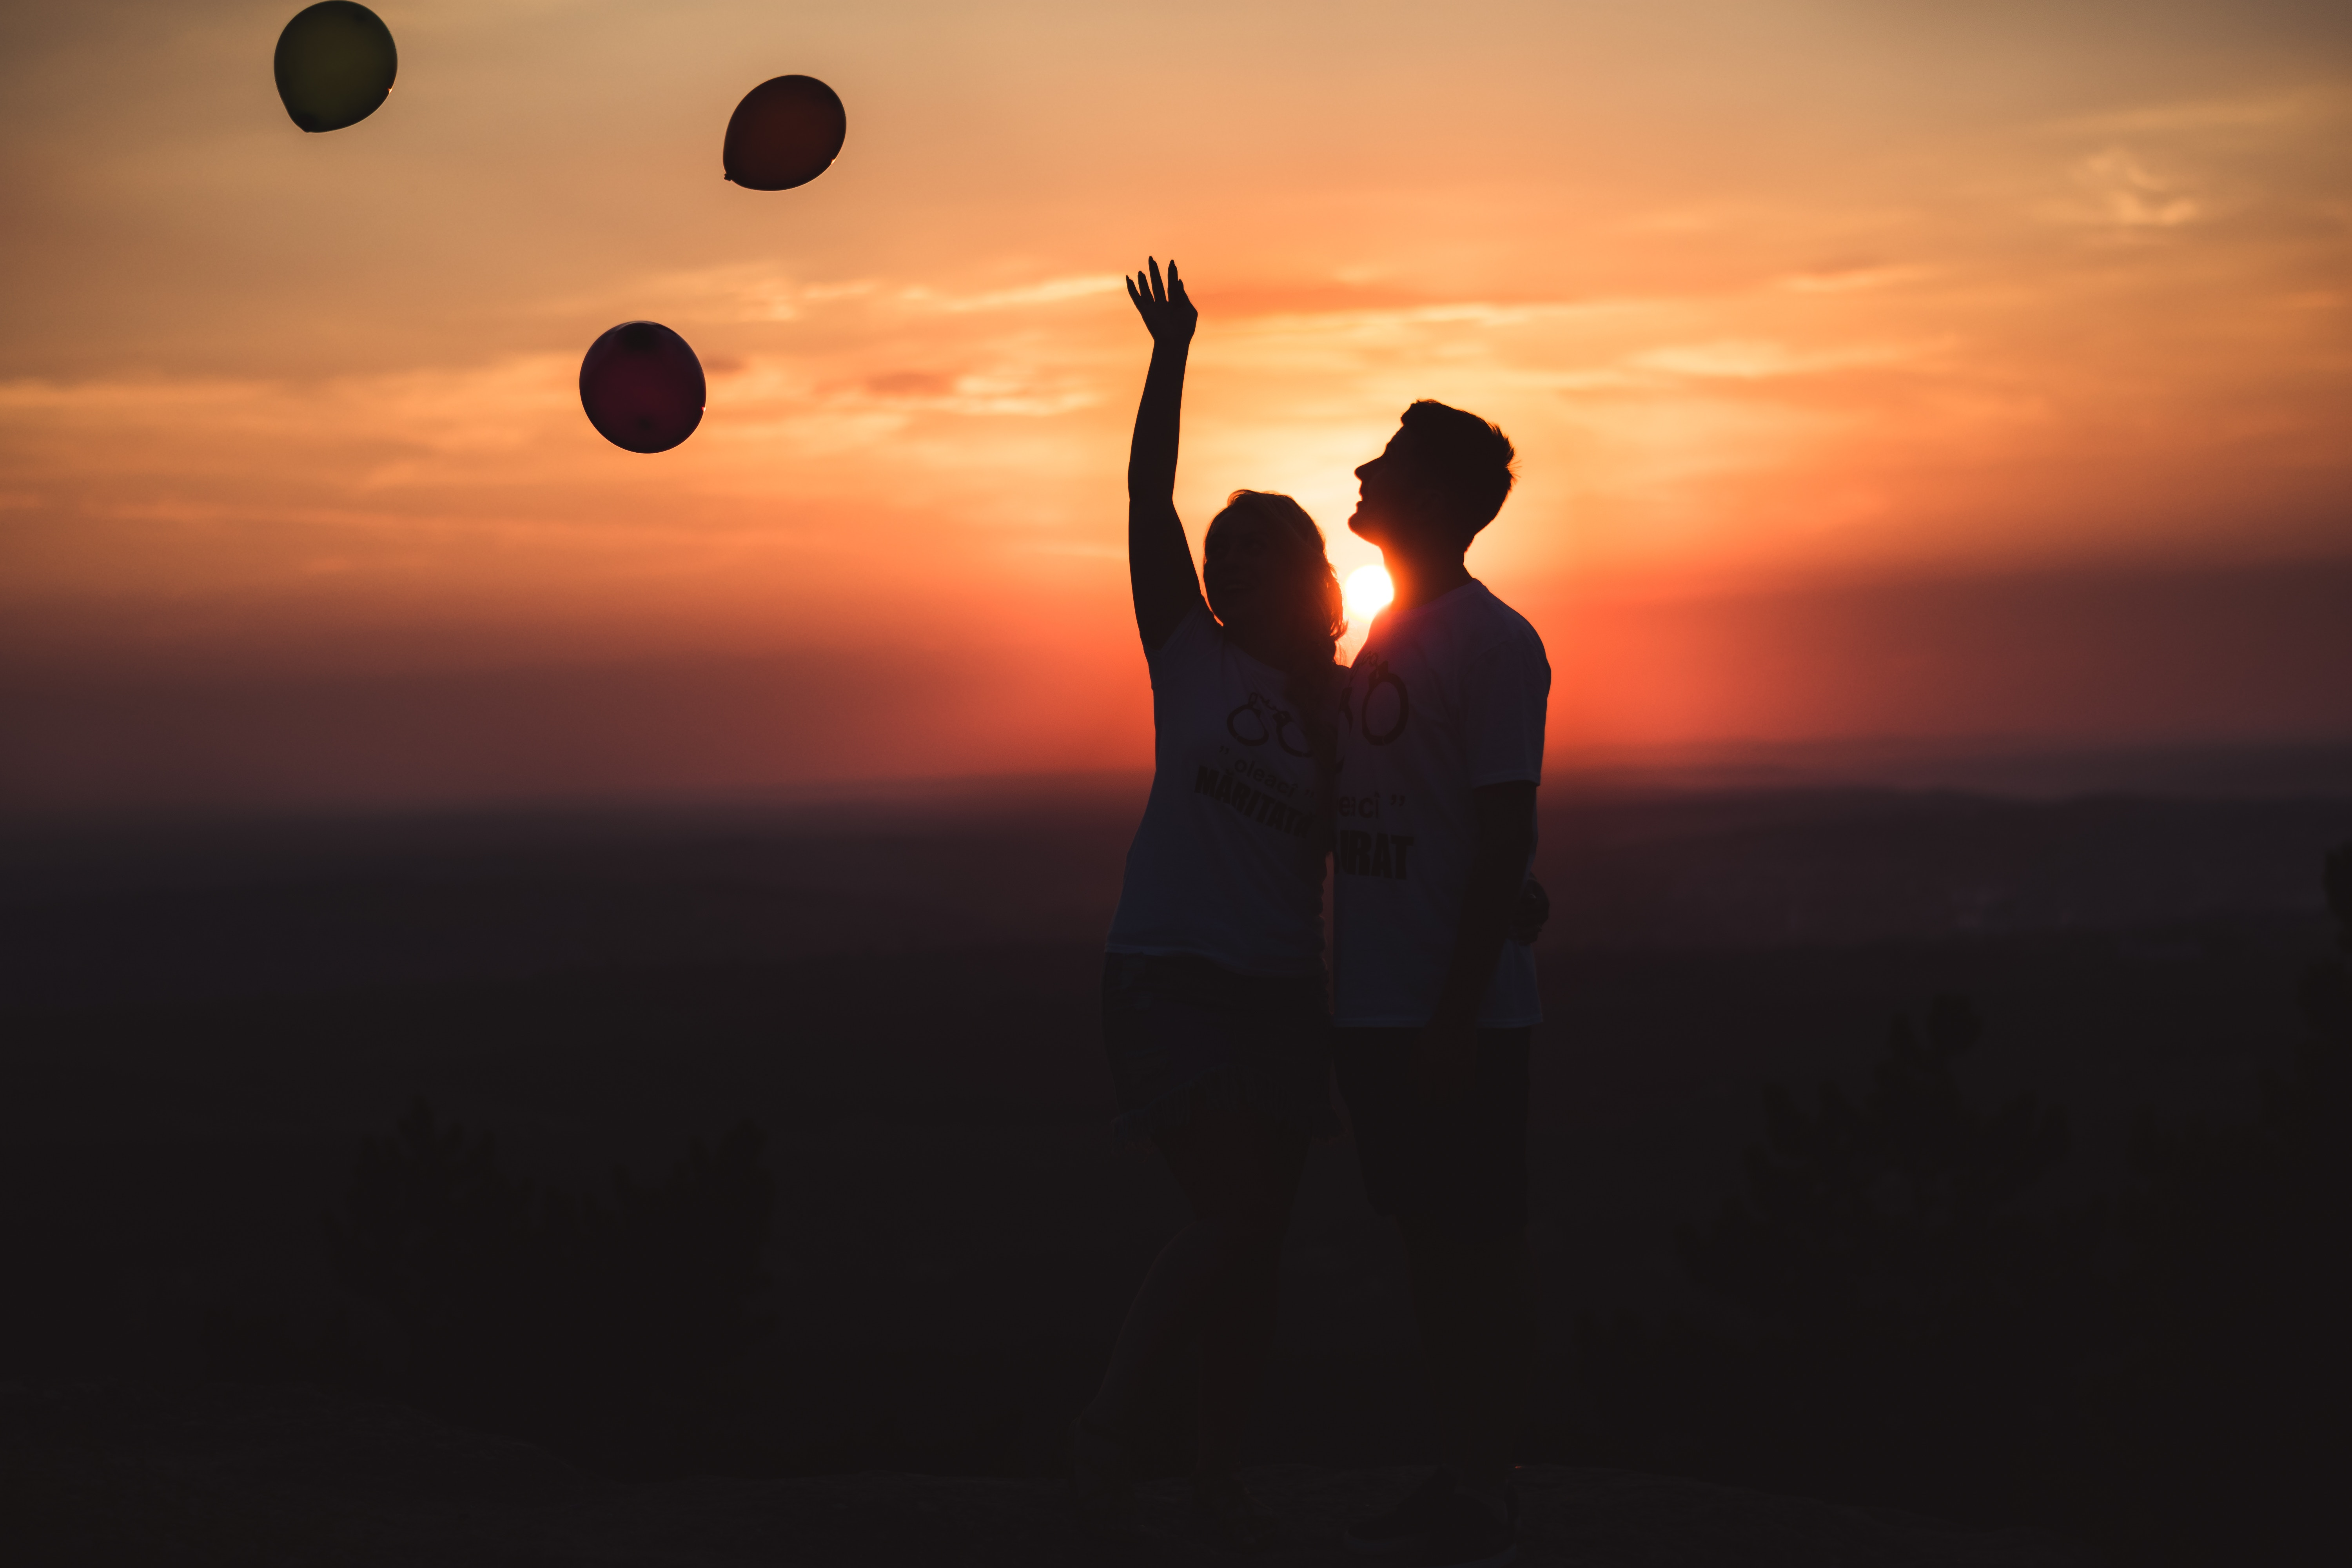 Silhouette Photo of Couple Standing Outdoors